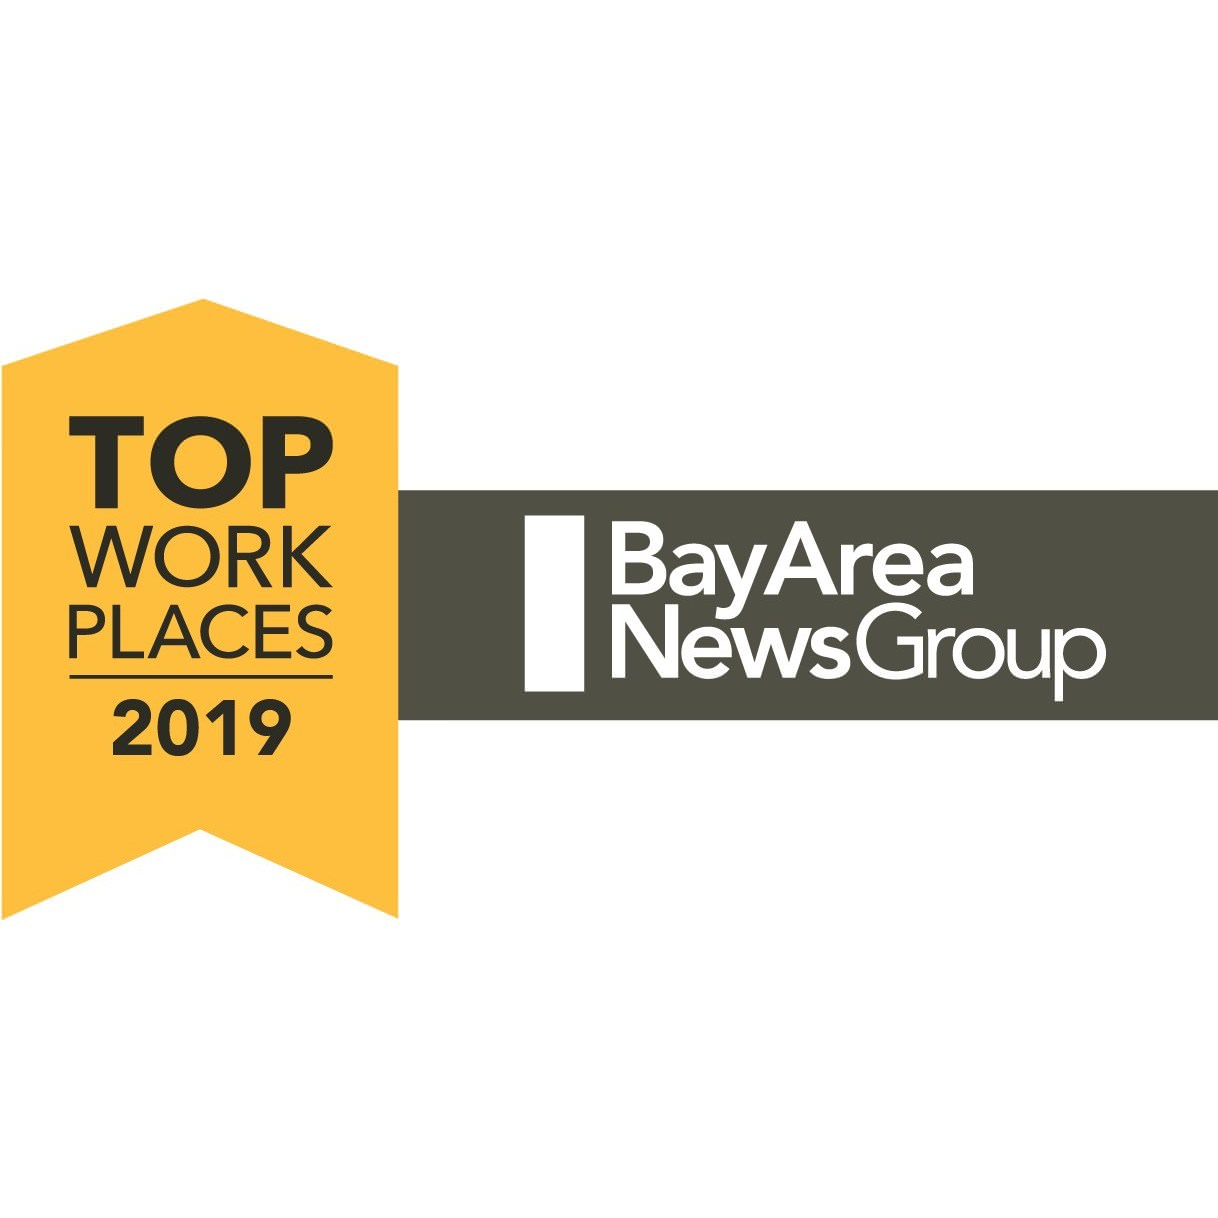 Bay Area News Groups Top Workplaces 2019